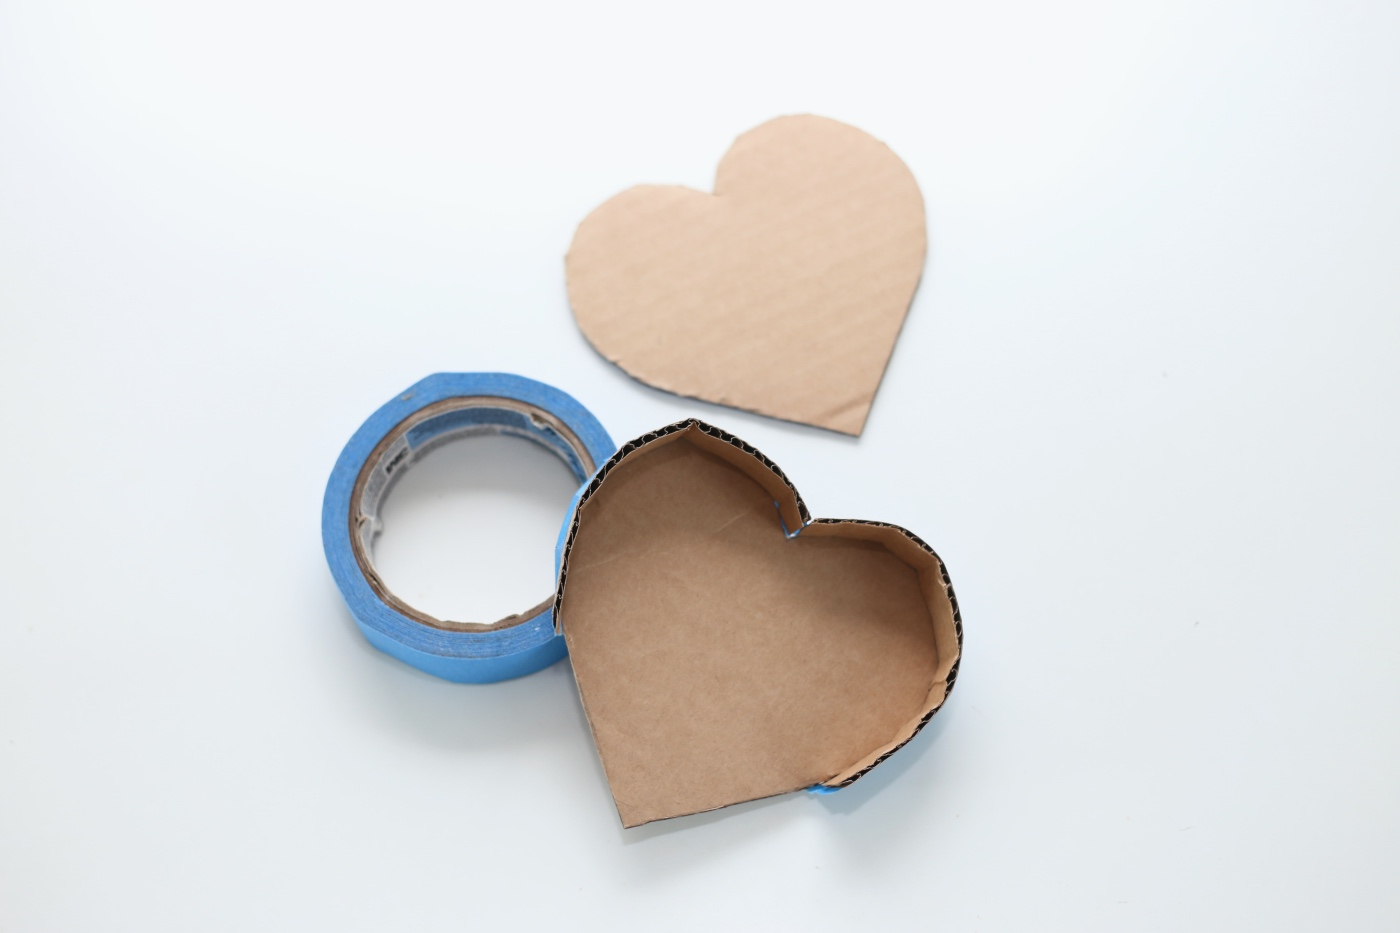 cardboard and tape to make a diy heart shaped pinata pop shop america